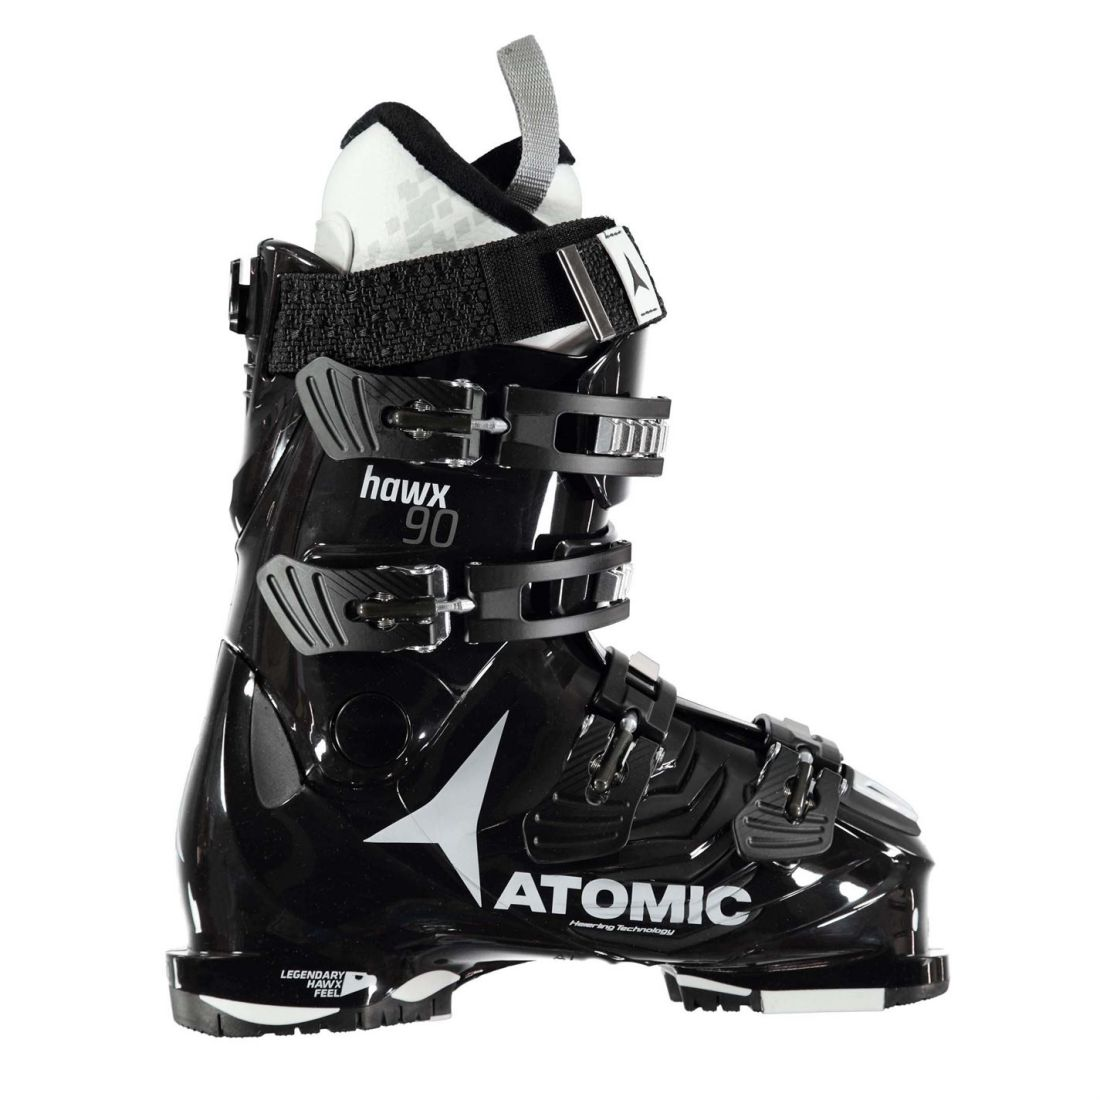 Atomic Hawx 90 Ski Boots Ladies Comfortable Fit Insulated  159598bb6